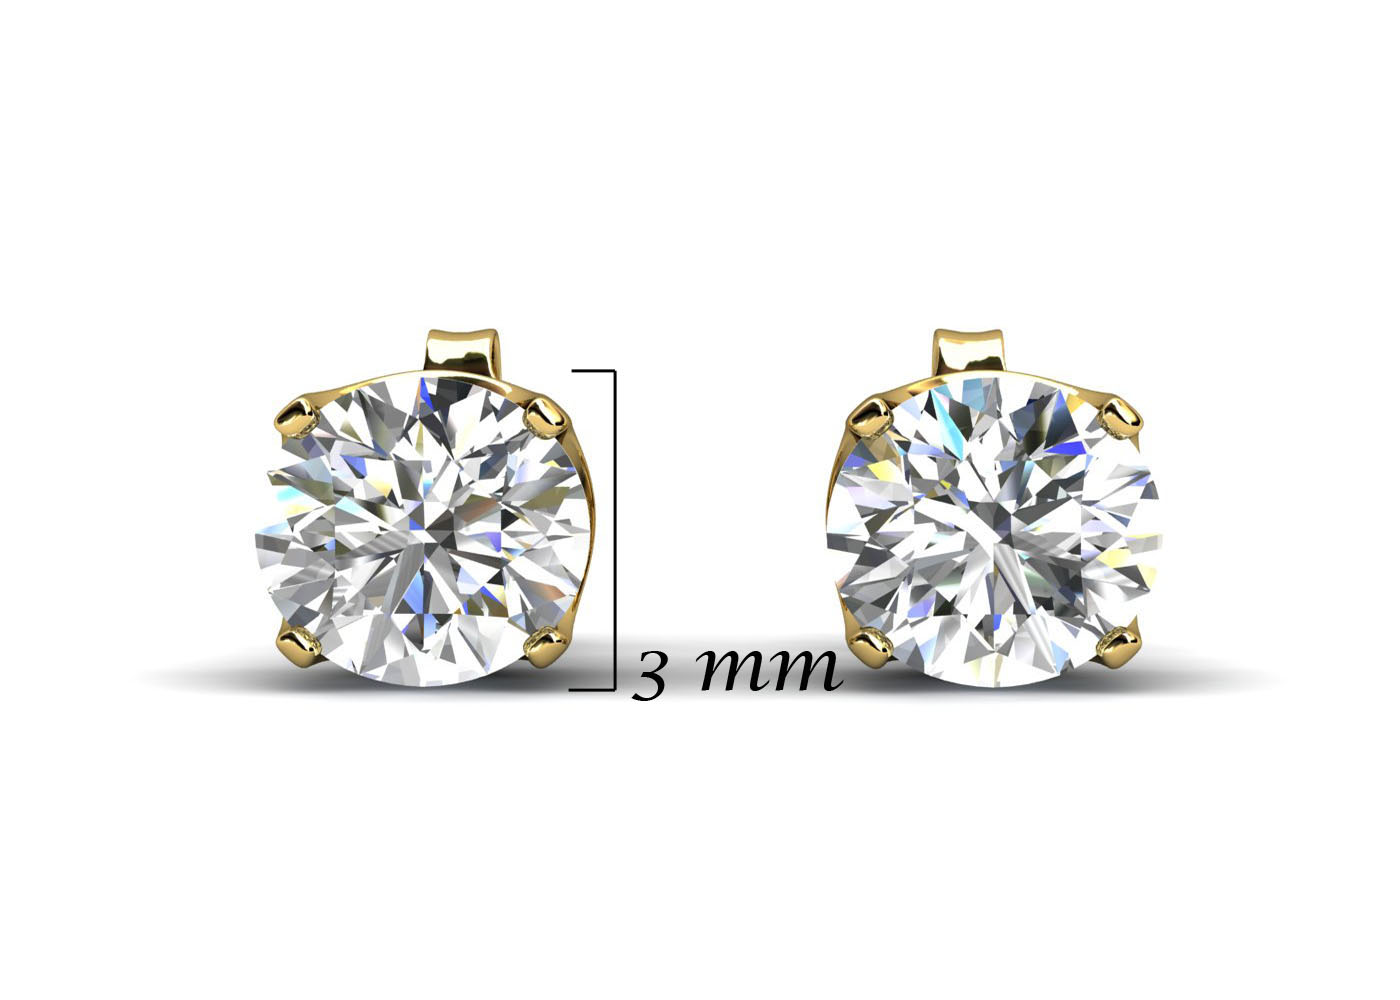 Lot 45 - 9ct Claw Set Diamond Earrings 0.20 Carats